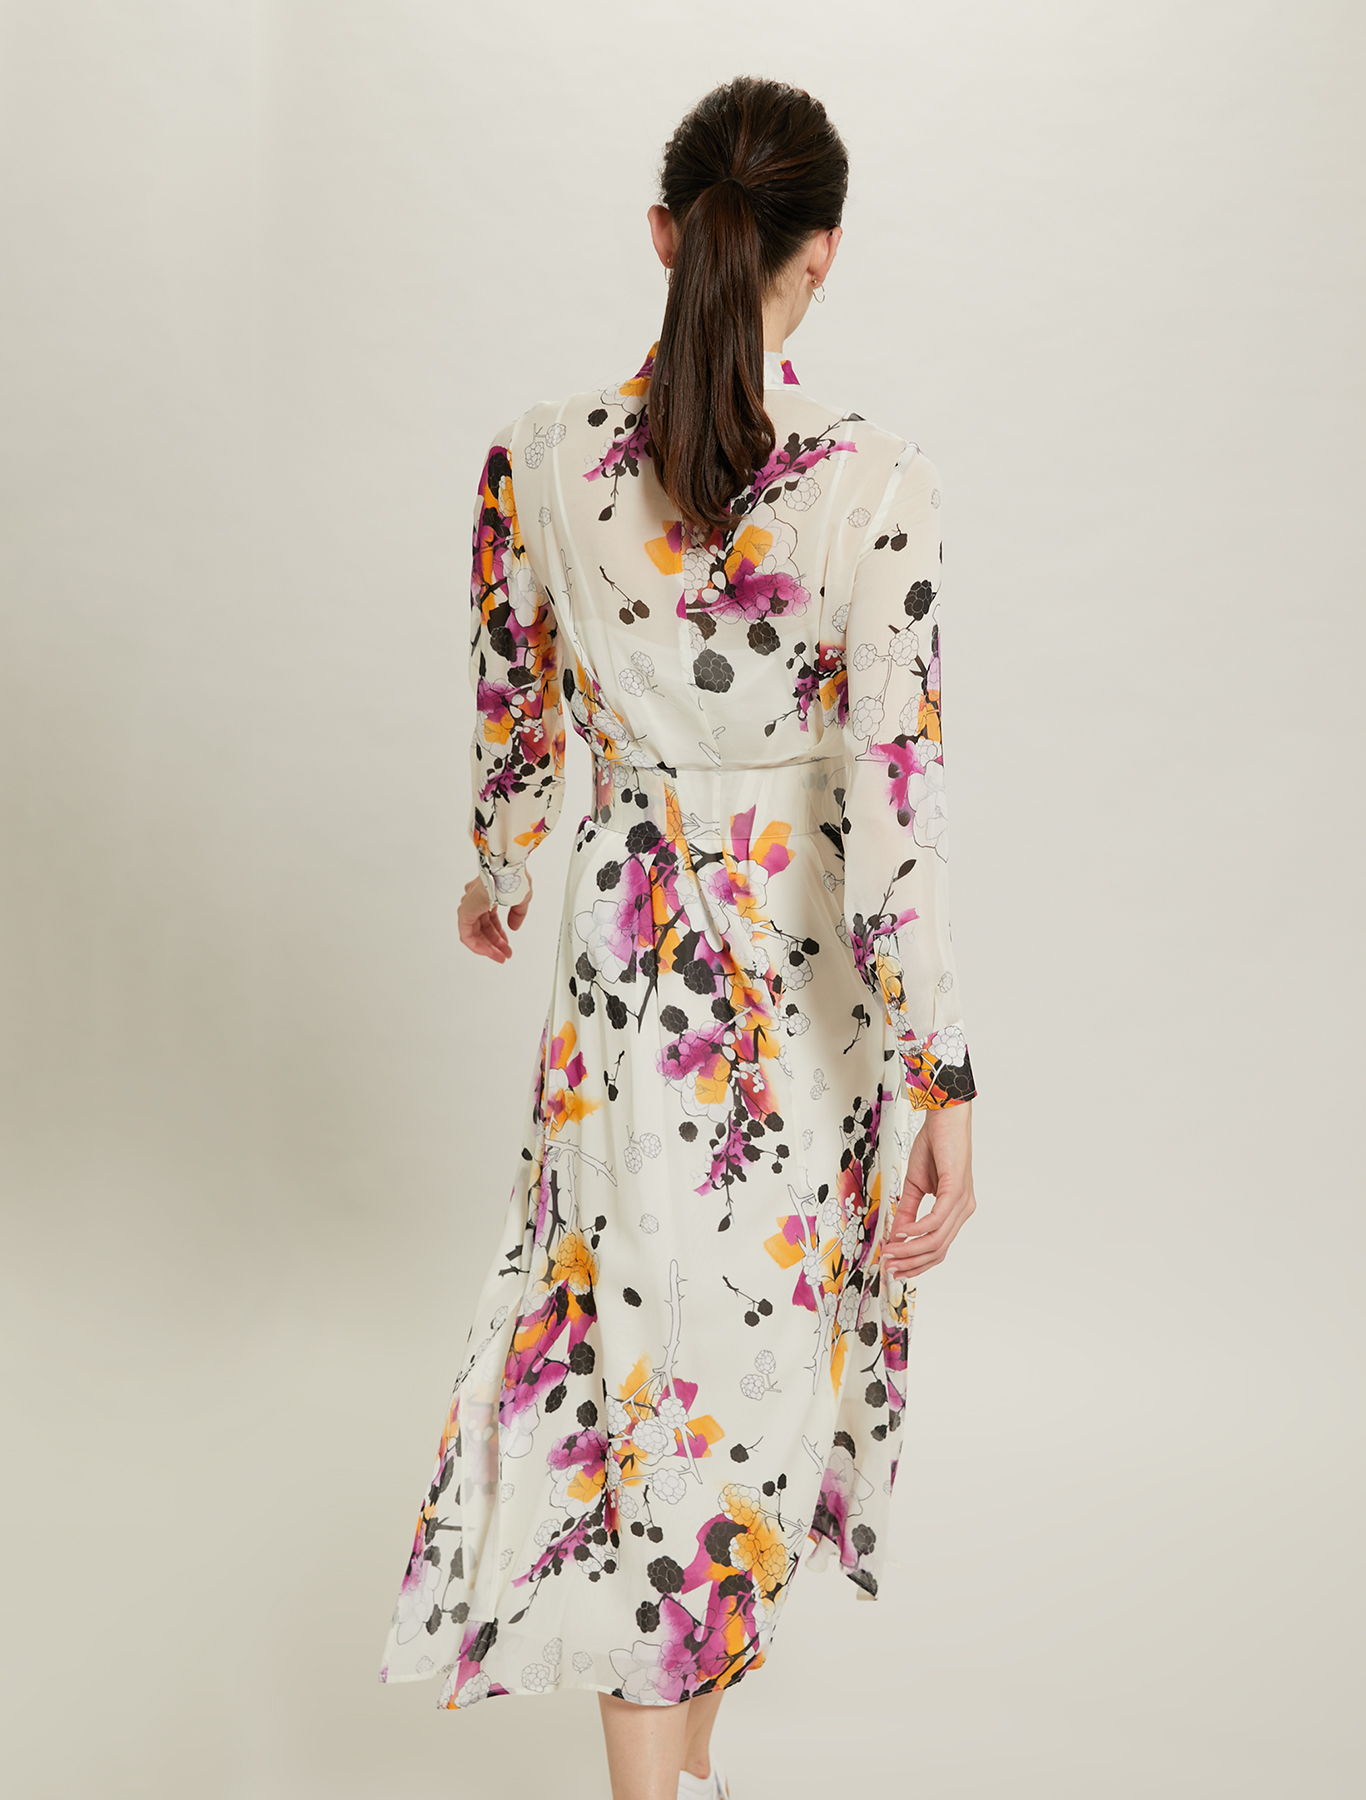 Sunset Road shirt dress in chiffon - white pattern - pennyblack